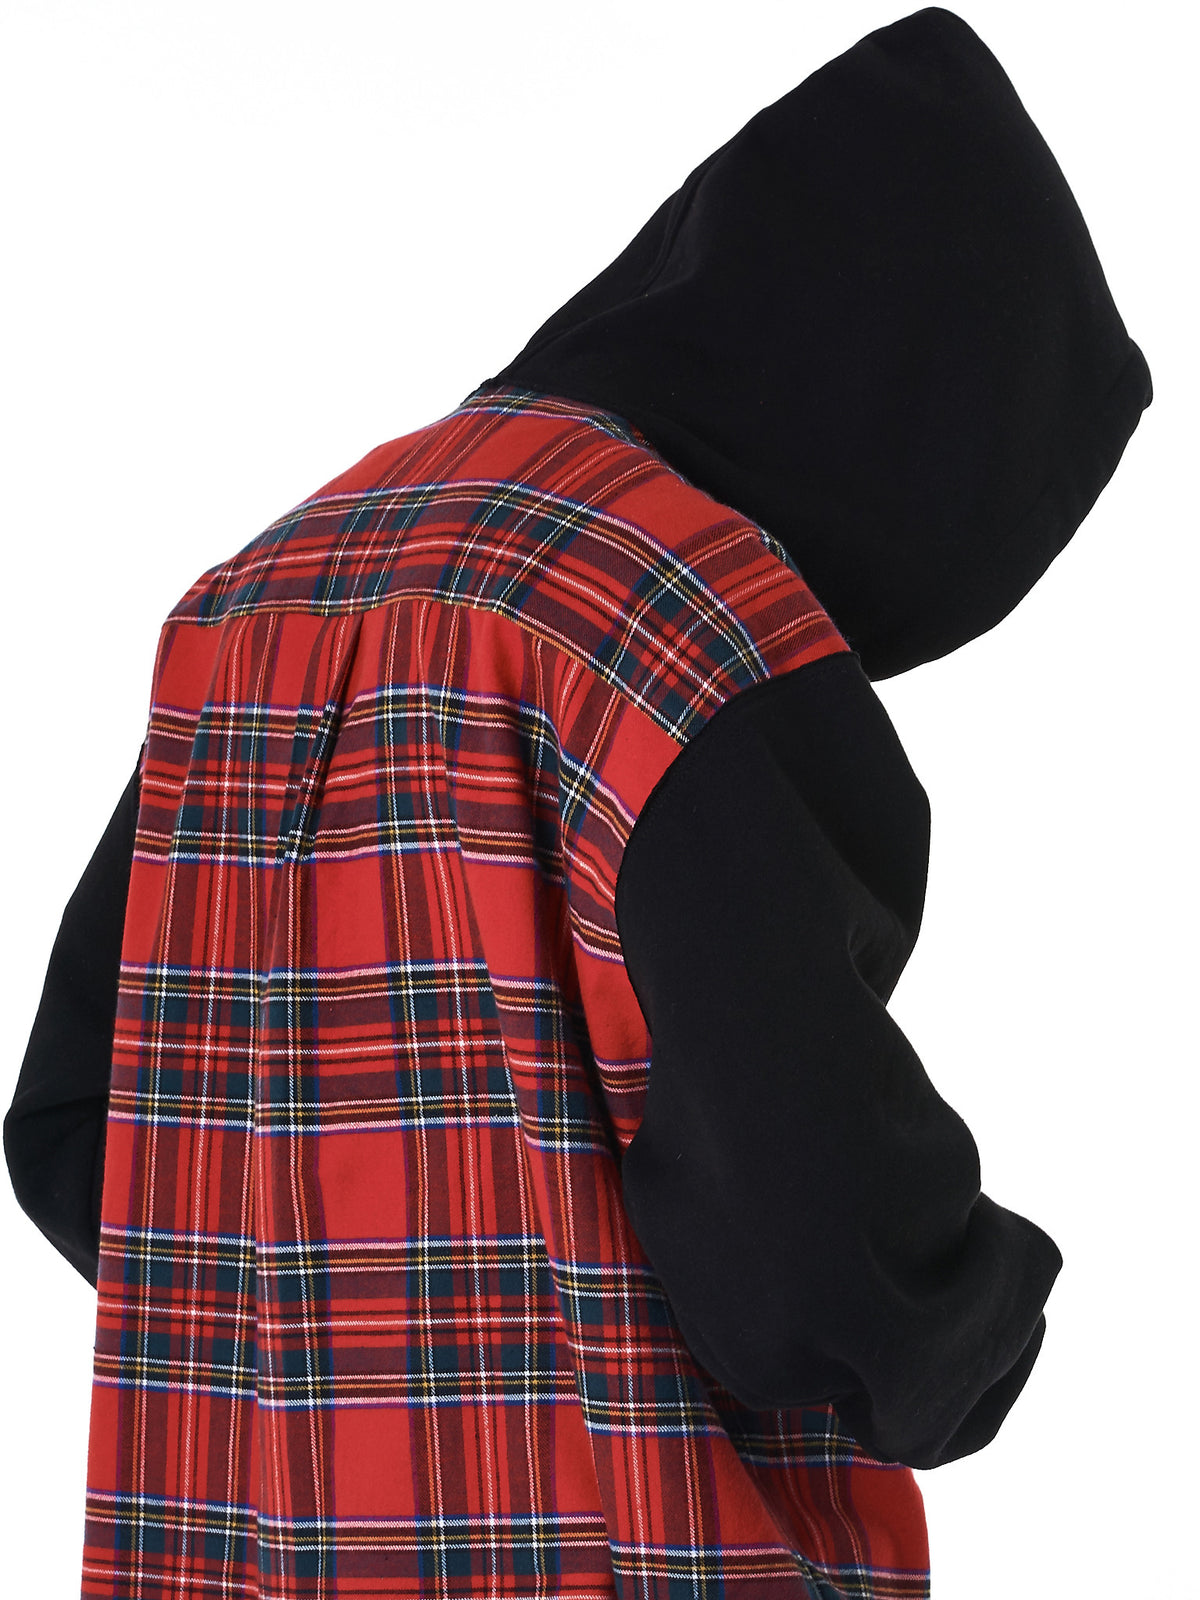 Plaid Hooded Sweater (NN10-ST08-A-BLK-RED-CHECK)